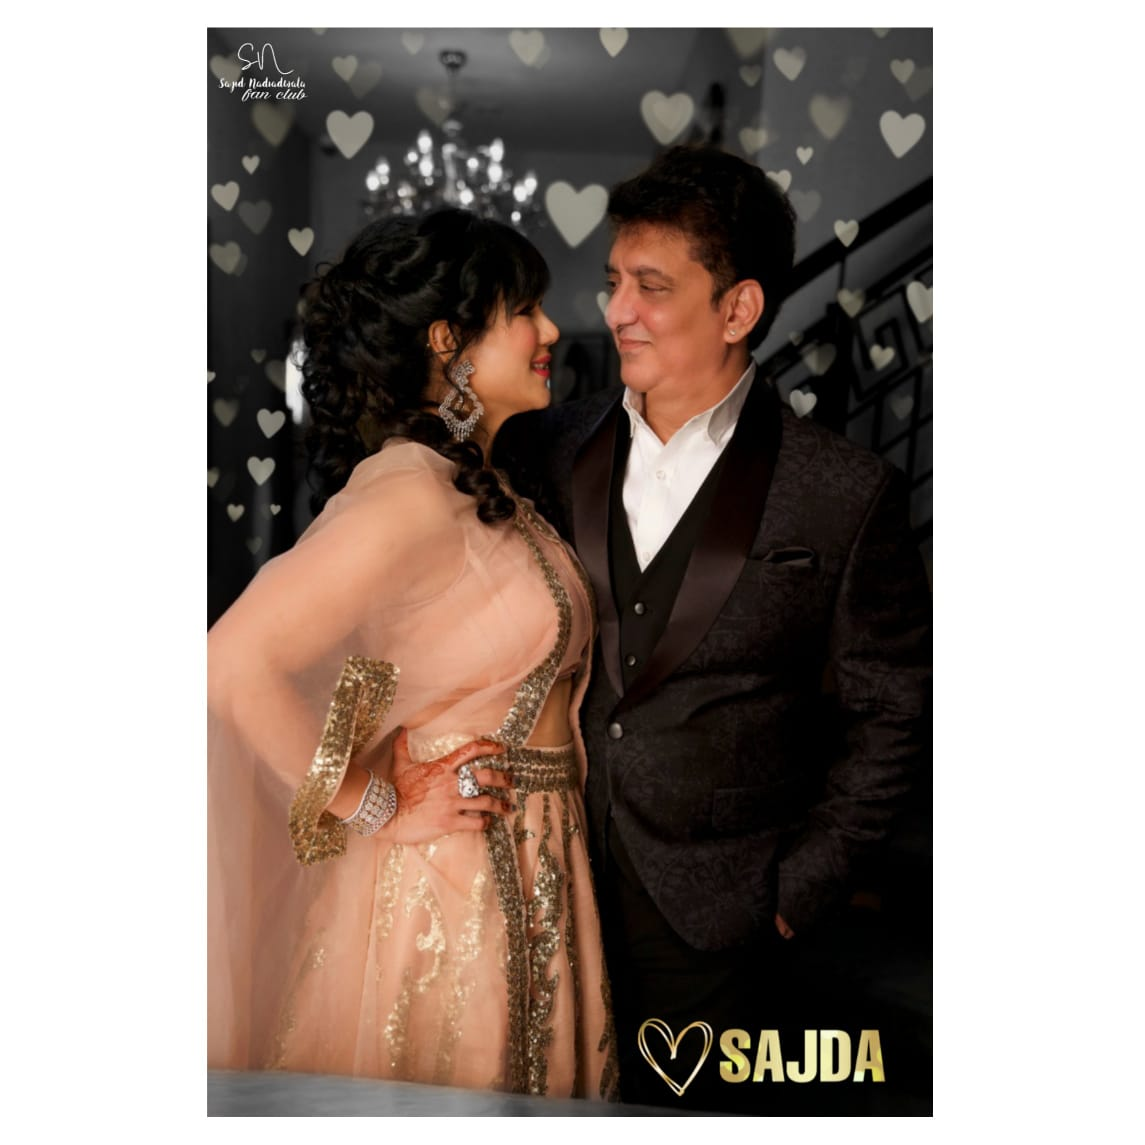 To another year walking life's path hand- in- hand and heart-in-heart❤️❤️❤️ 20 years of #SajDa😍 Happy Anniversary to #SajidNadiadwala sir and @WardaNadiadwala ma'am💕 Lots of love and happiness to you both🥰🥰🥰